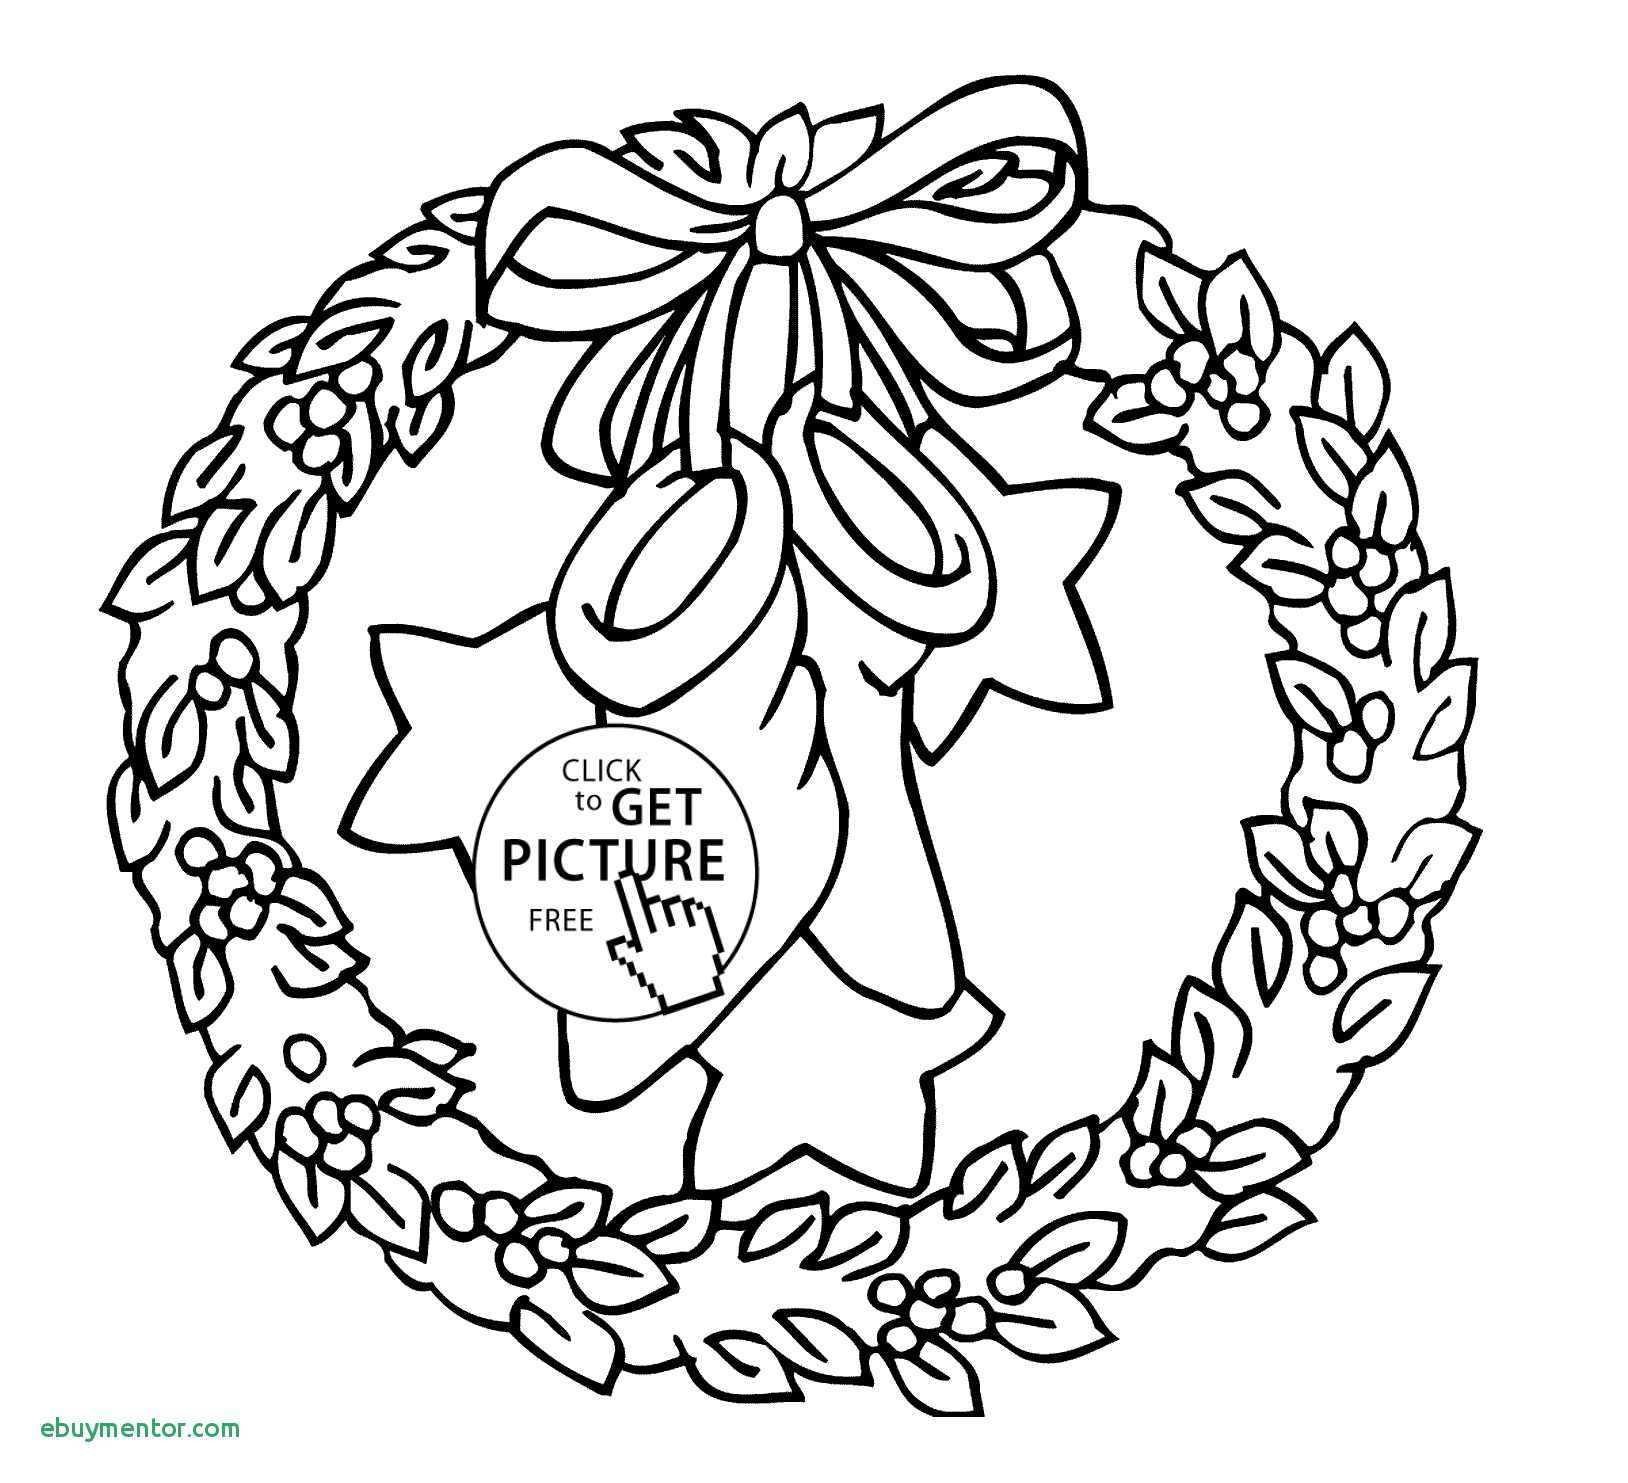 Christmas Wreath Coloring Pages For Adults With Page Shapes Worksheet Awesome